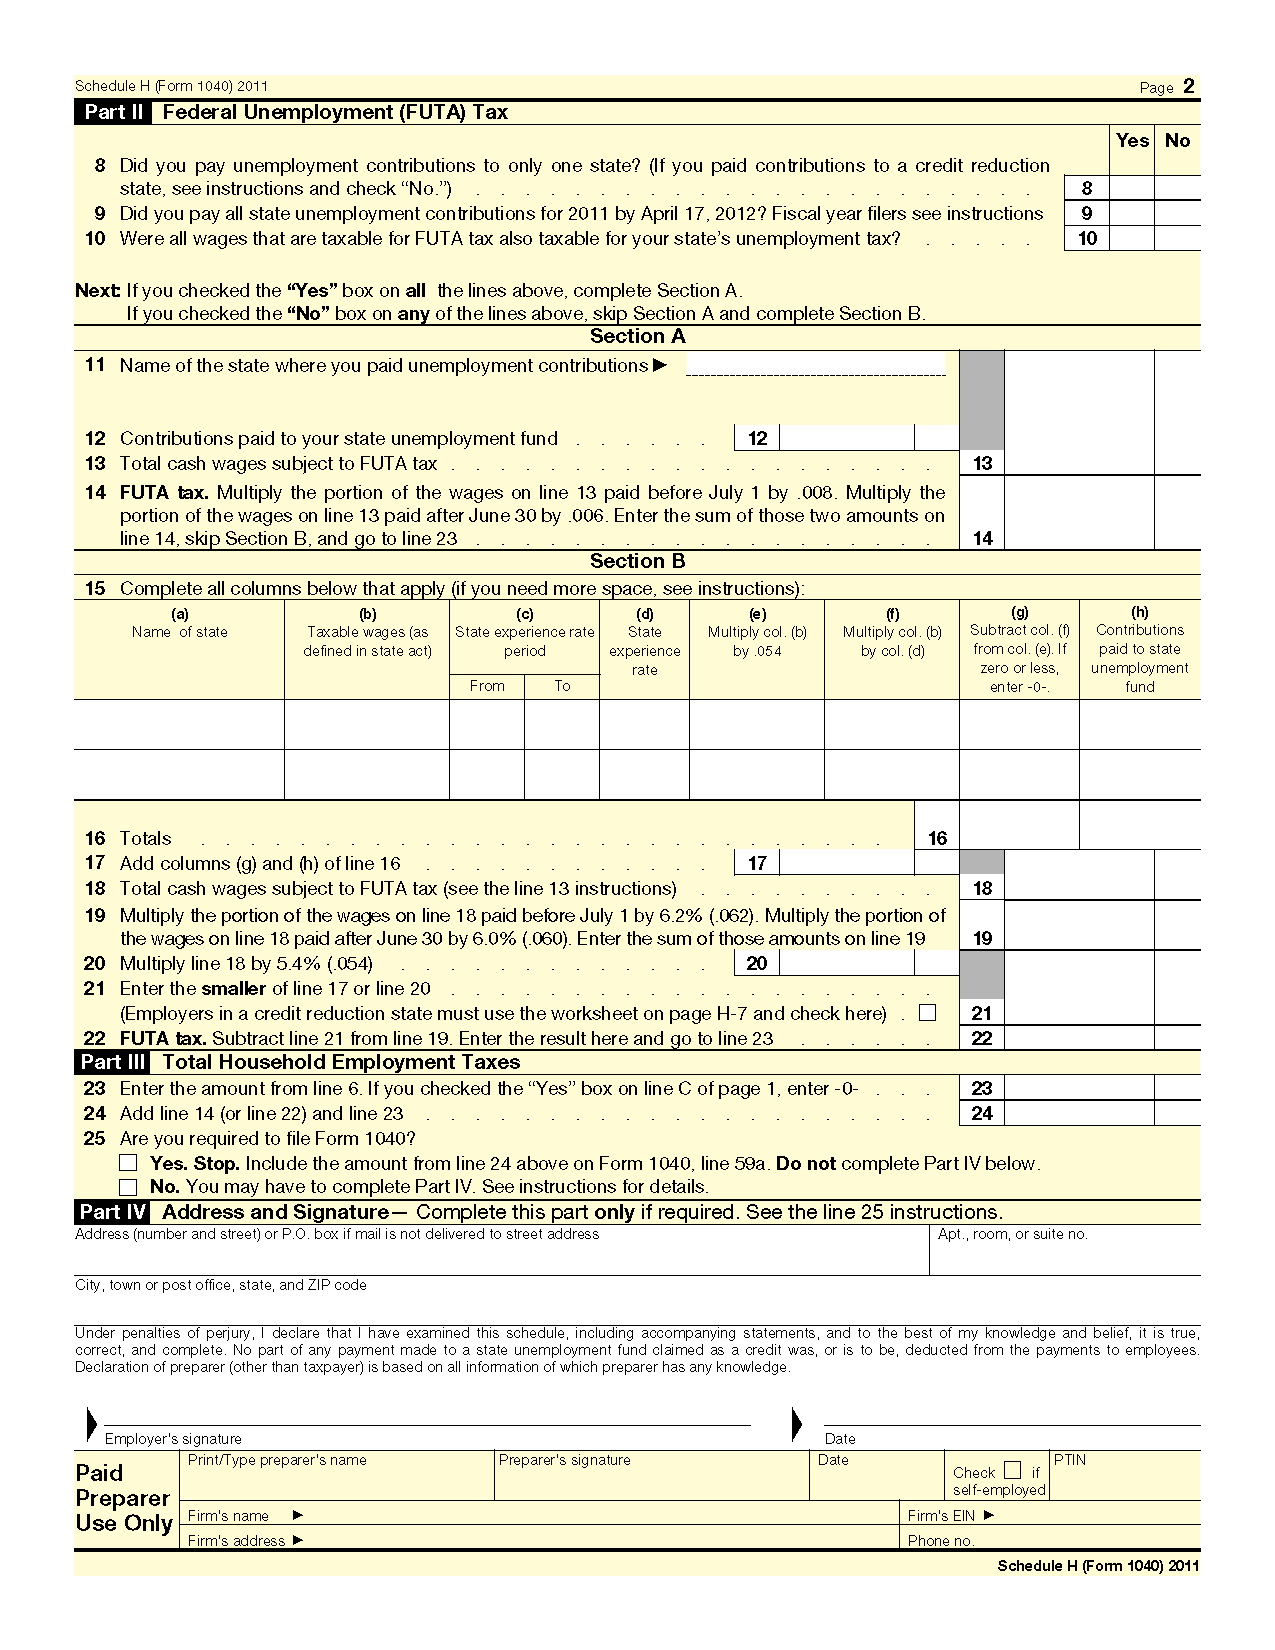 Fed Income Tax Forms 1040a